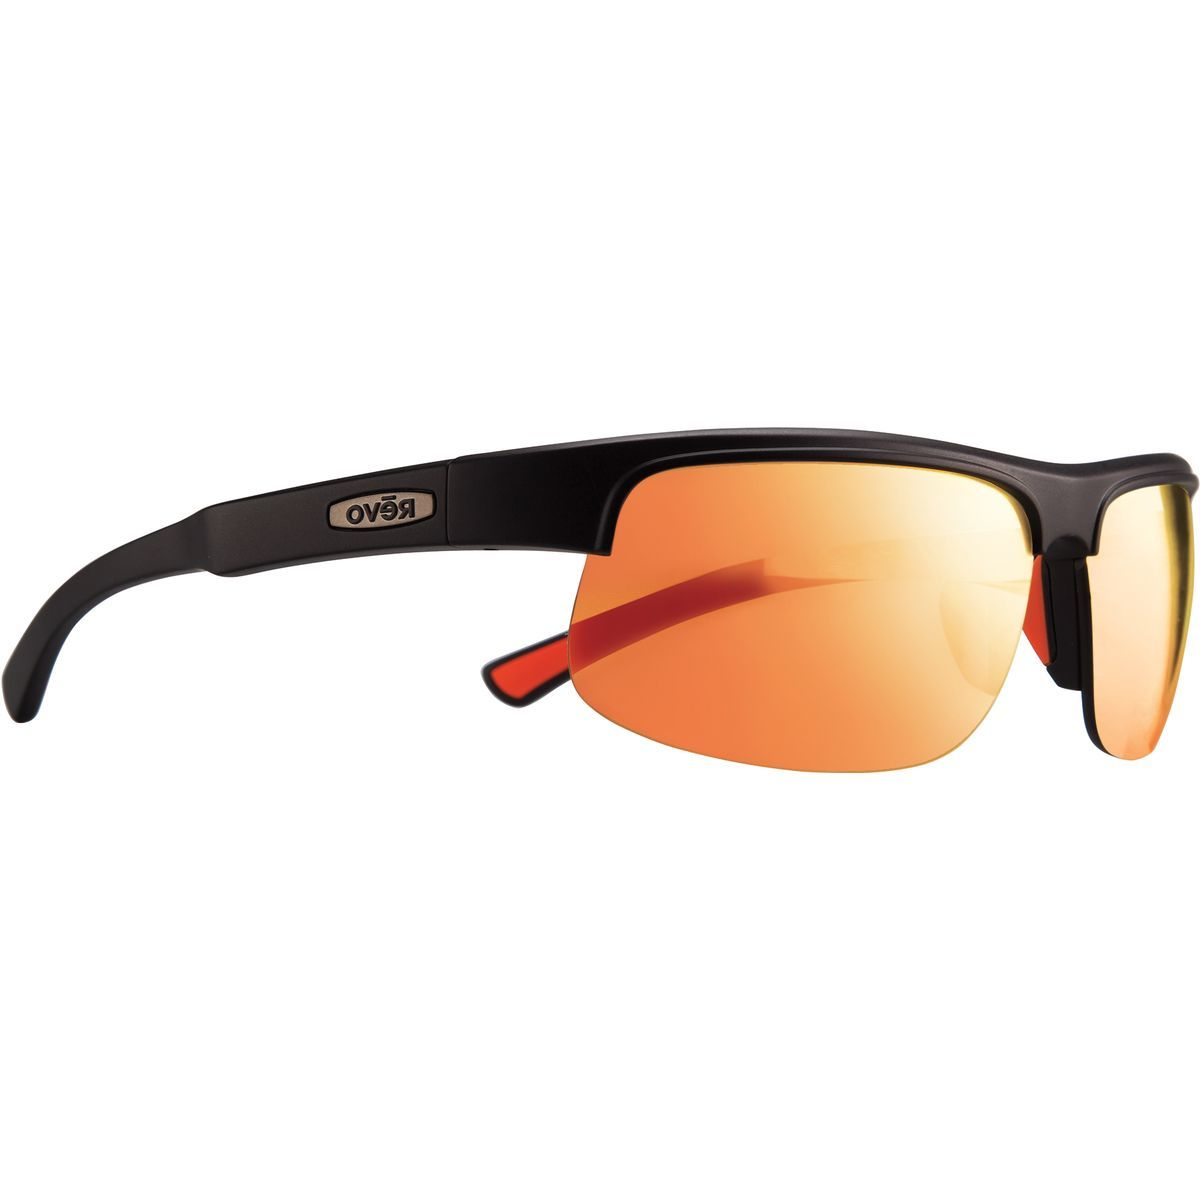 Revo Cusp C Polarized Sunglasses - Men's